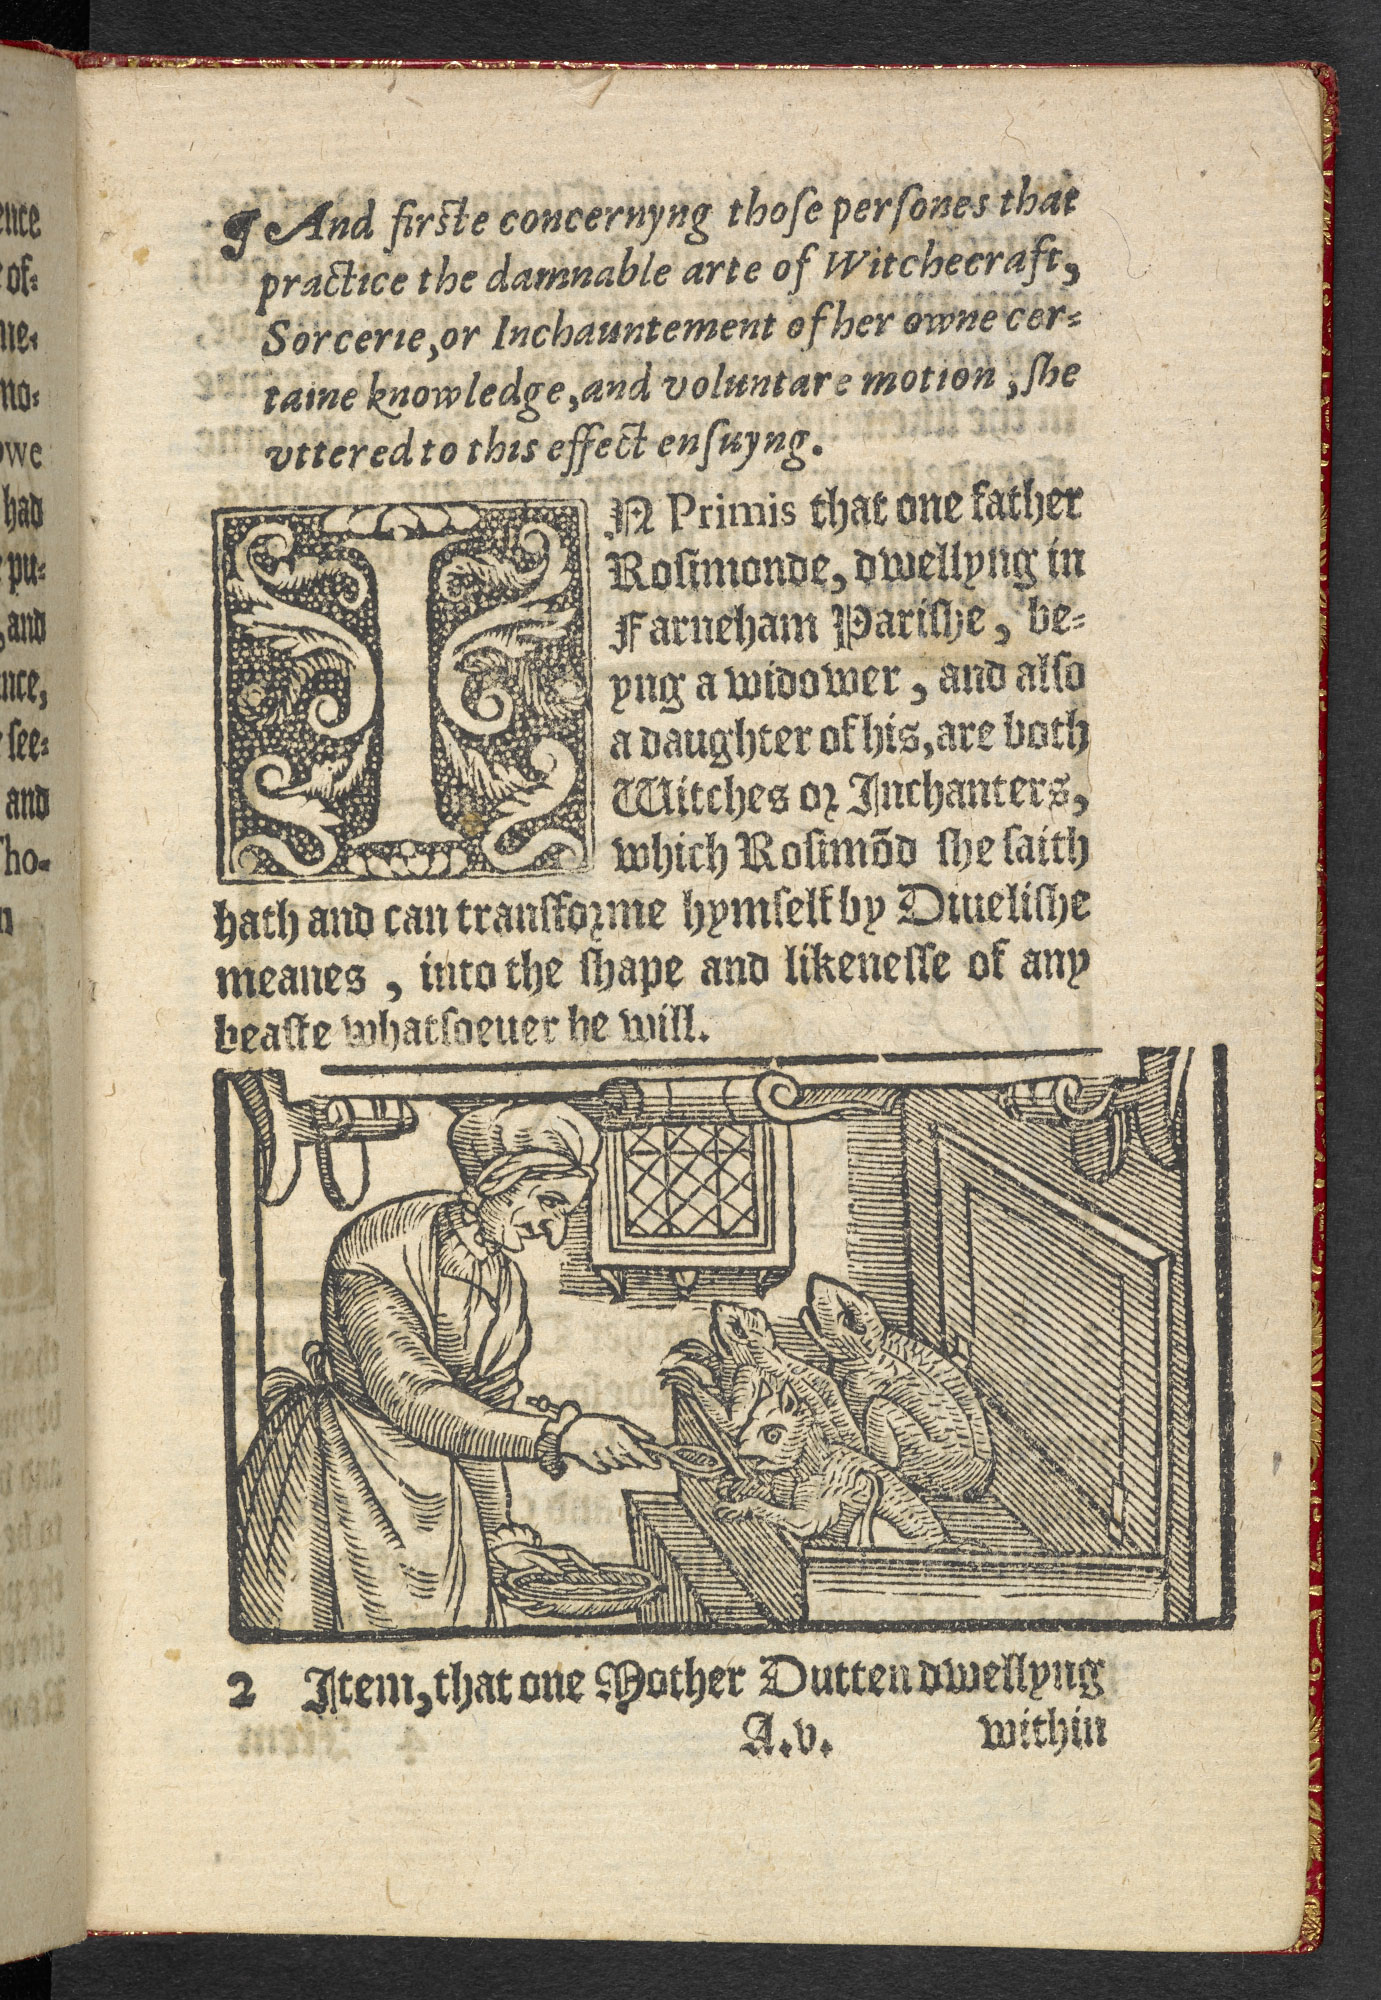 Witches in Macbeth - The British Library